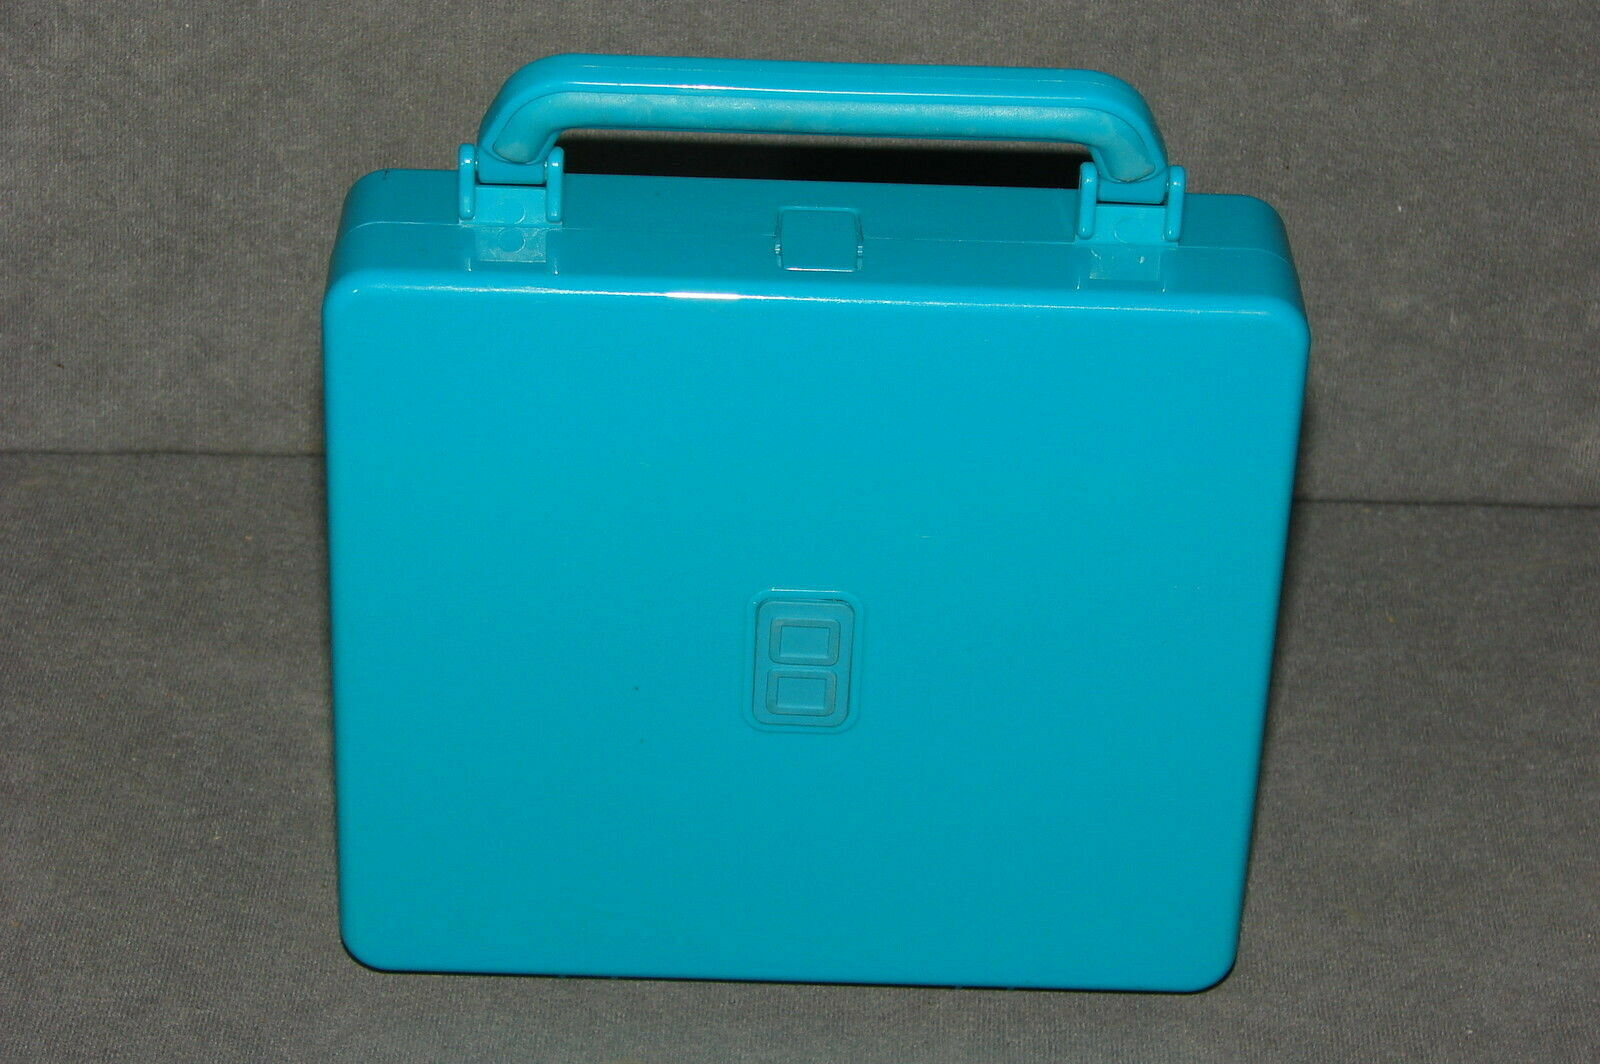 Primary image for Nintendo DS: Aqua Blue System Carrying Case Hard Shell 7x6